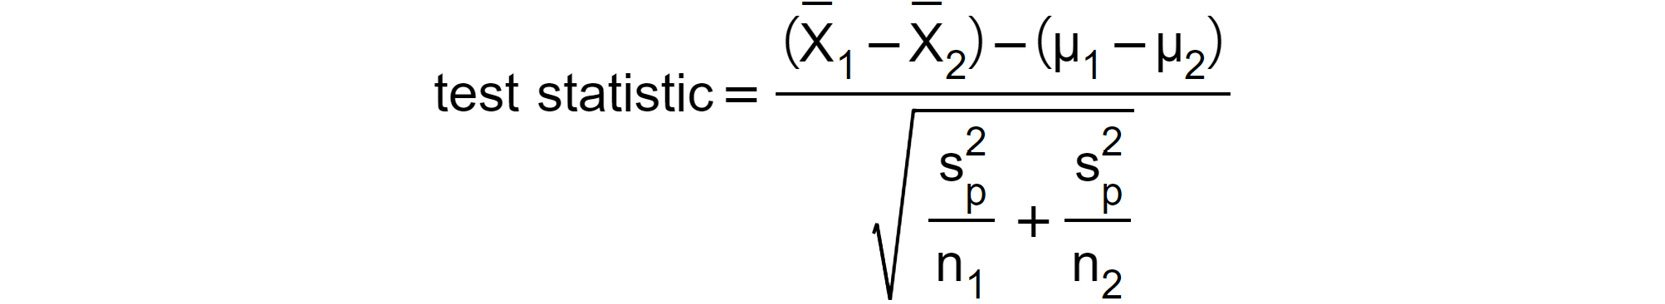 Figure 1.13: Test statistic with the sample means